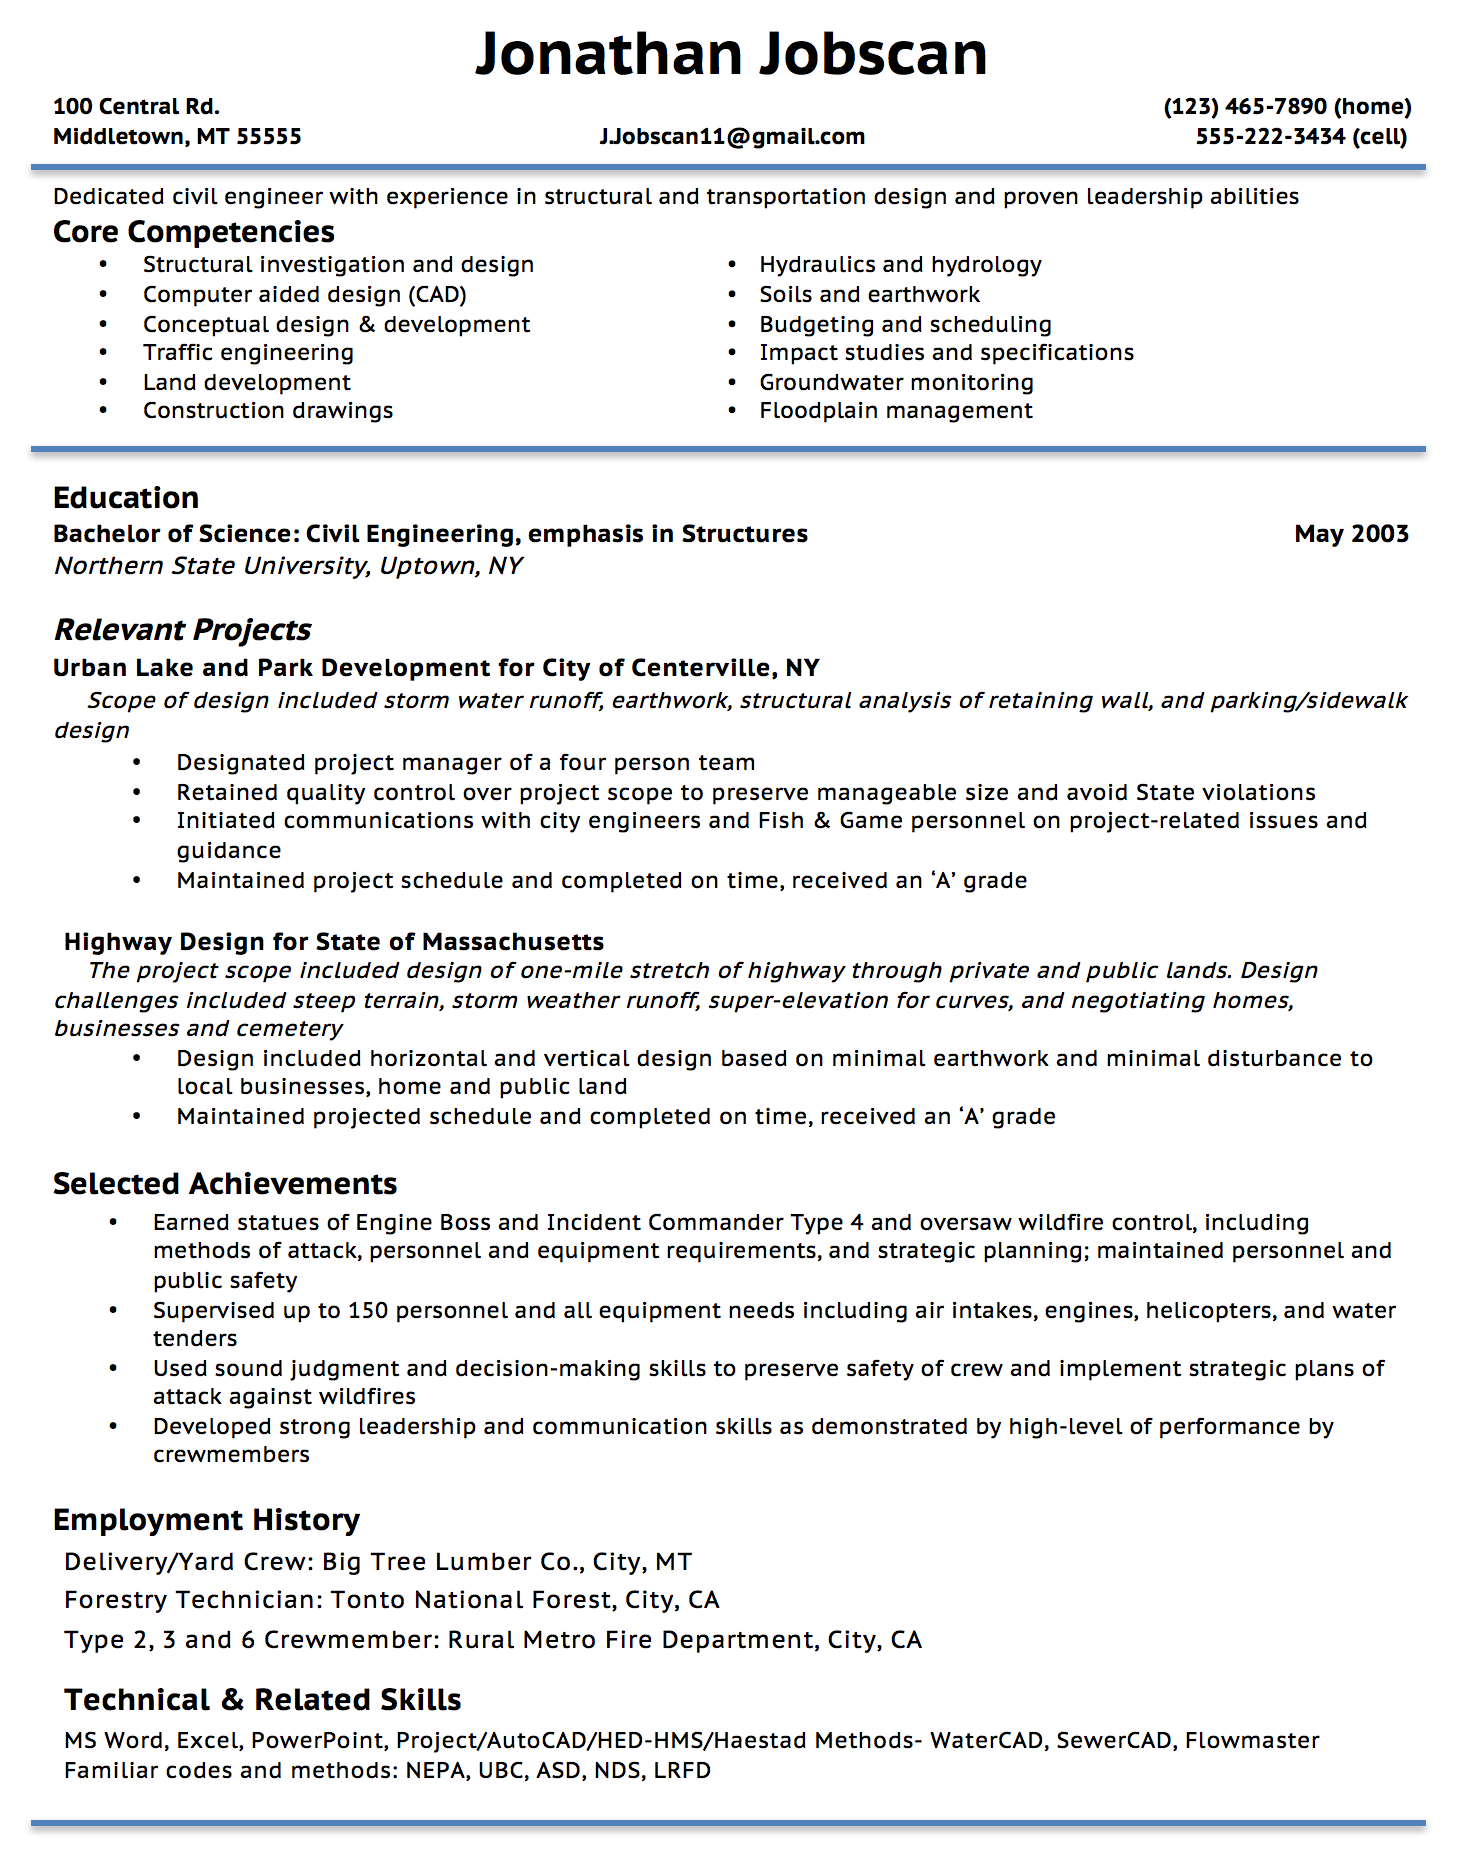 Opposenewapstandardsus  Pleasing Resume Writing Guide  Jobscan With Inspiring Example Of A Functional Resume Format With Divine Funny Resume Mistakes Also Job Resume Template Download In Addition Senior Auditor Resume And Skills Section Of Resume Example As Well As Wardrobe Stylist Resume Additionally Bartender Duties For Resume From Jobscanco With Opposenewapstandardsus  Inspiring Resume Writing Guide  Jobscan With Divine Example Of A Functional Resume Format And Pleasing Funny Resume Mistakes Also Job Resume Template Download In Addition Senior Auditor Resume From Jobscanco